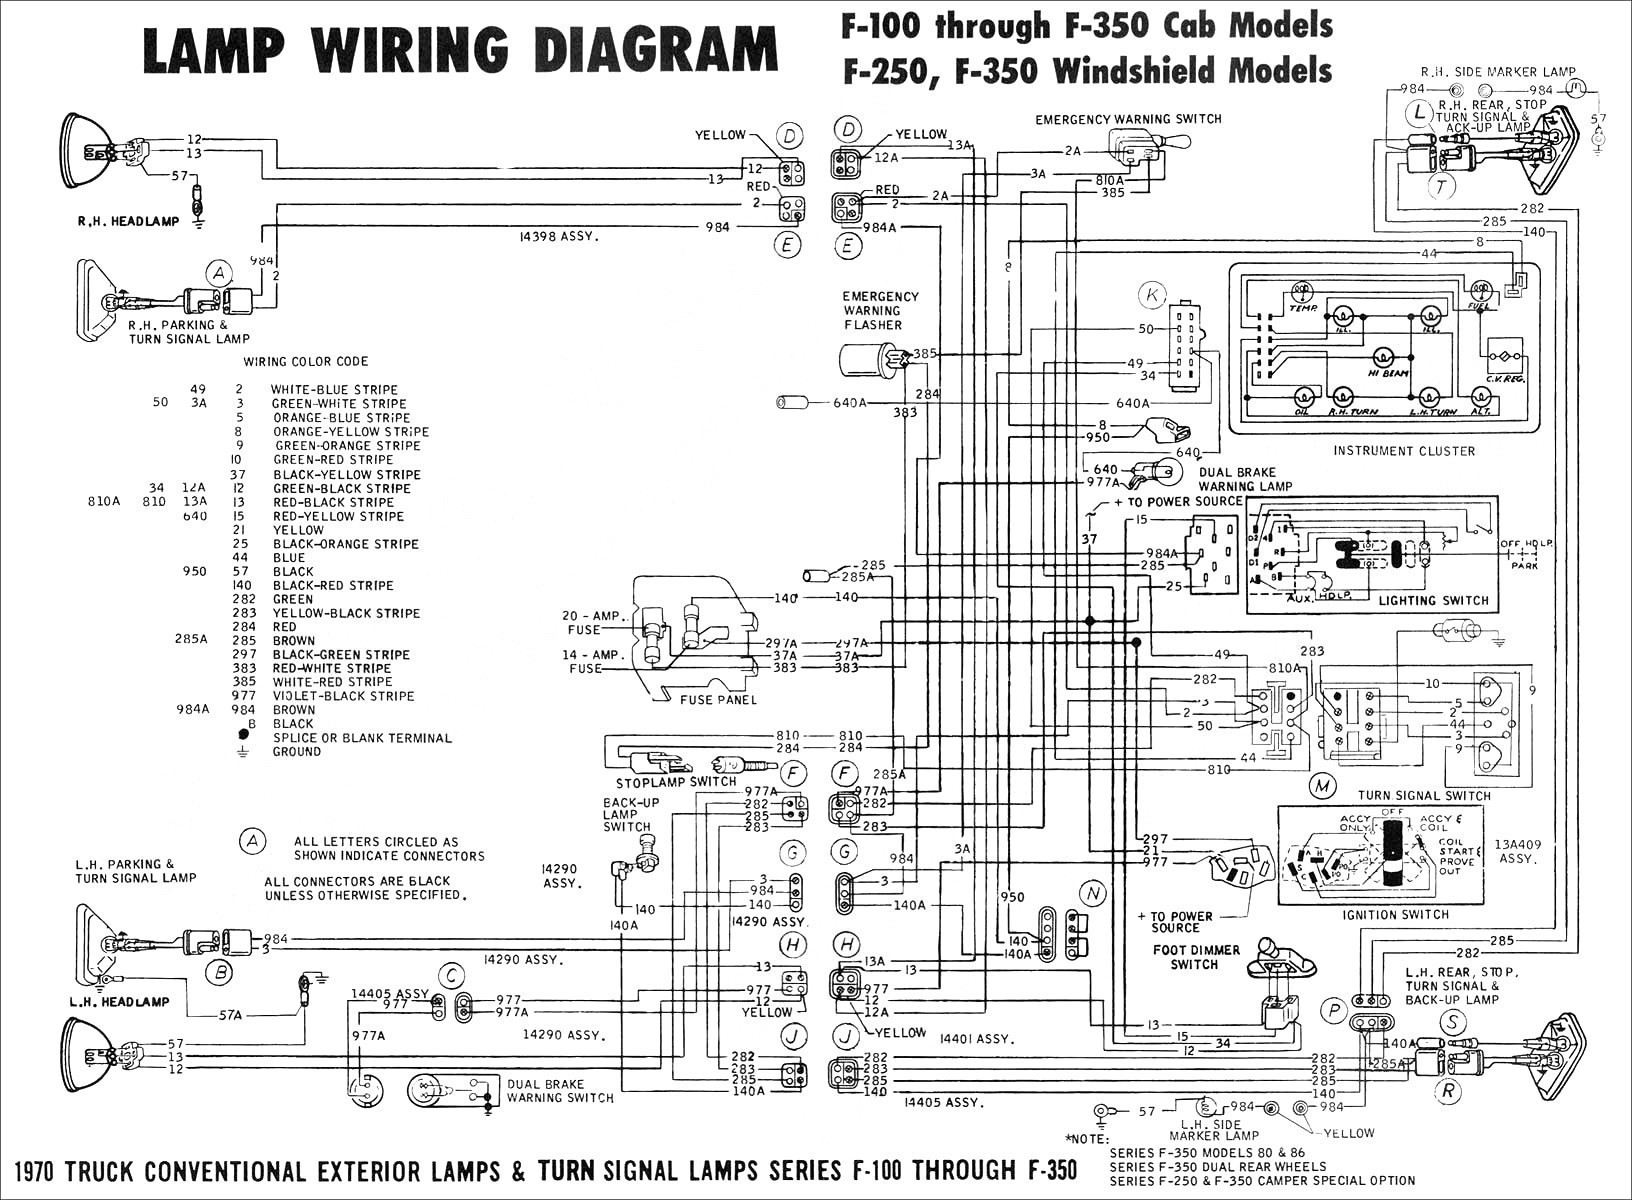 2000 Vw Jetta Stereo Wiring Diagram - Diagram Resource Gallery